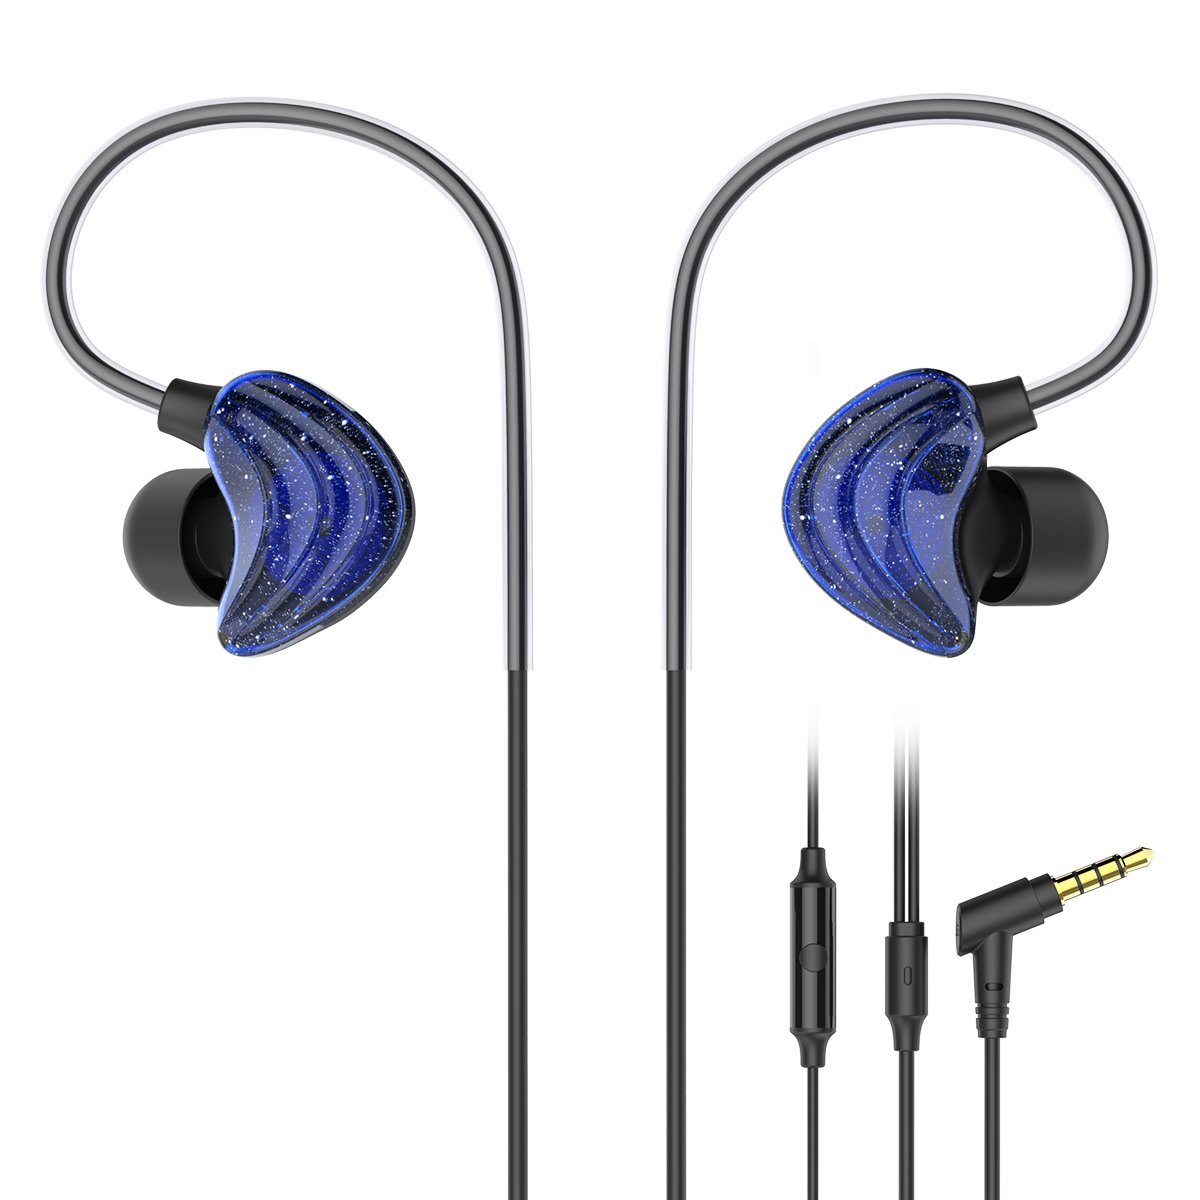 UiiSii In Ear Earphones, CM5 Sports Headphones with Mic and Remote, Comfortable Graphene Coaxial Design, and Stereo Bass Earbuds For Gym Running(Blue) by UiiSii